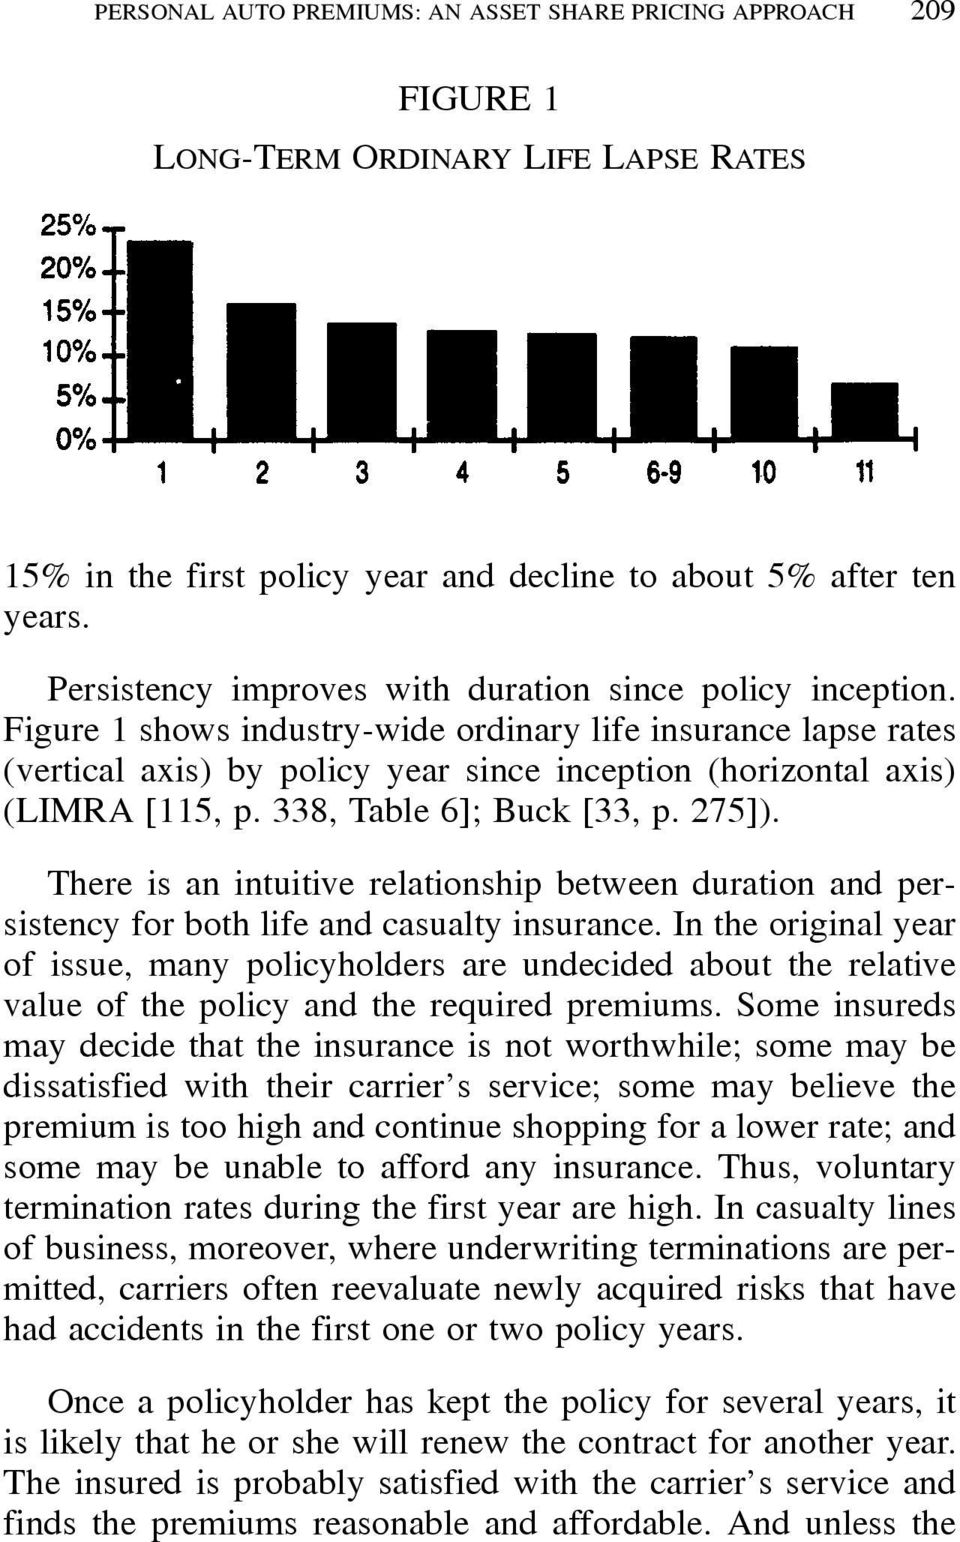 Figure 1 shows industry-wide ordinary life insurance lapse rates (vertical axis) by policy year since inception (horizontal axis) (LIMRA [115, p. 338, Table 6]; Buck [33, p. 275]).